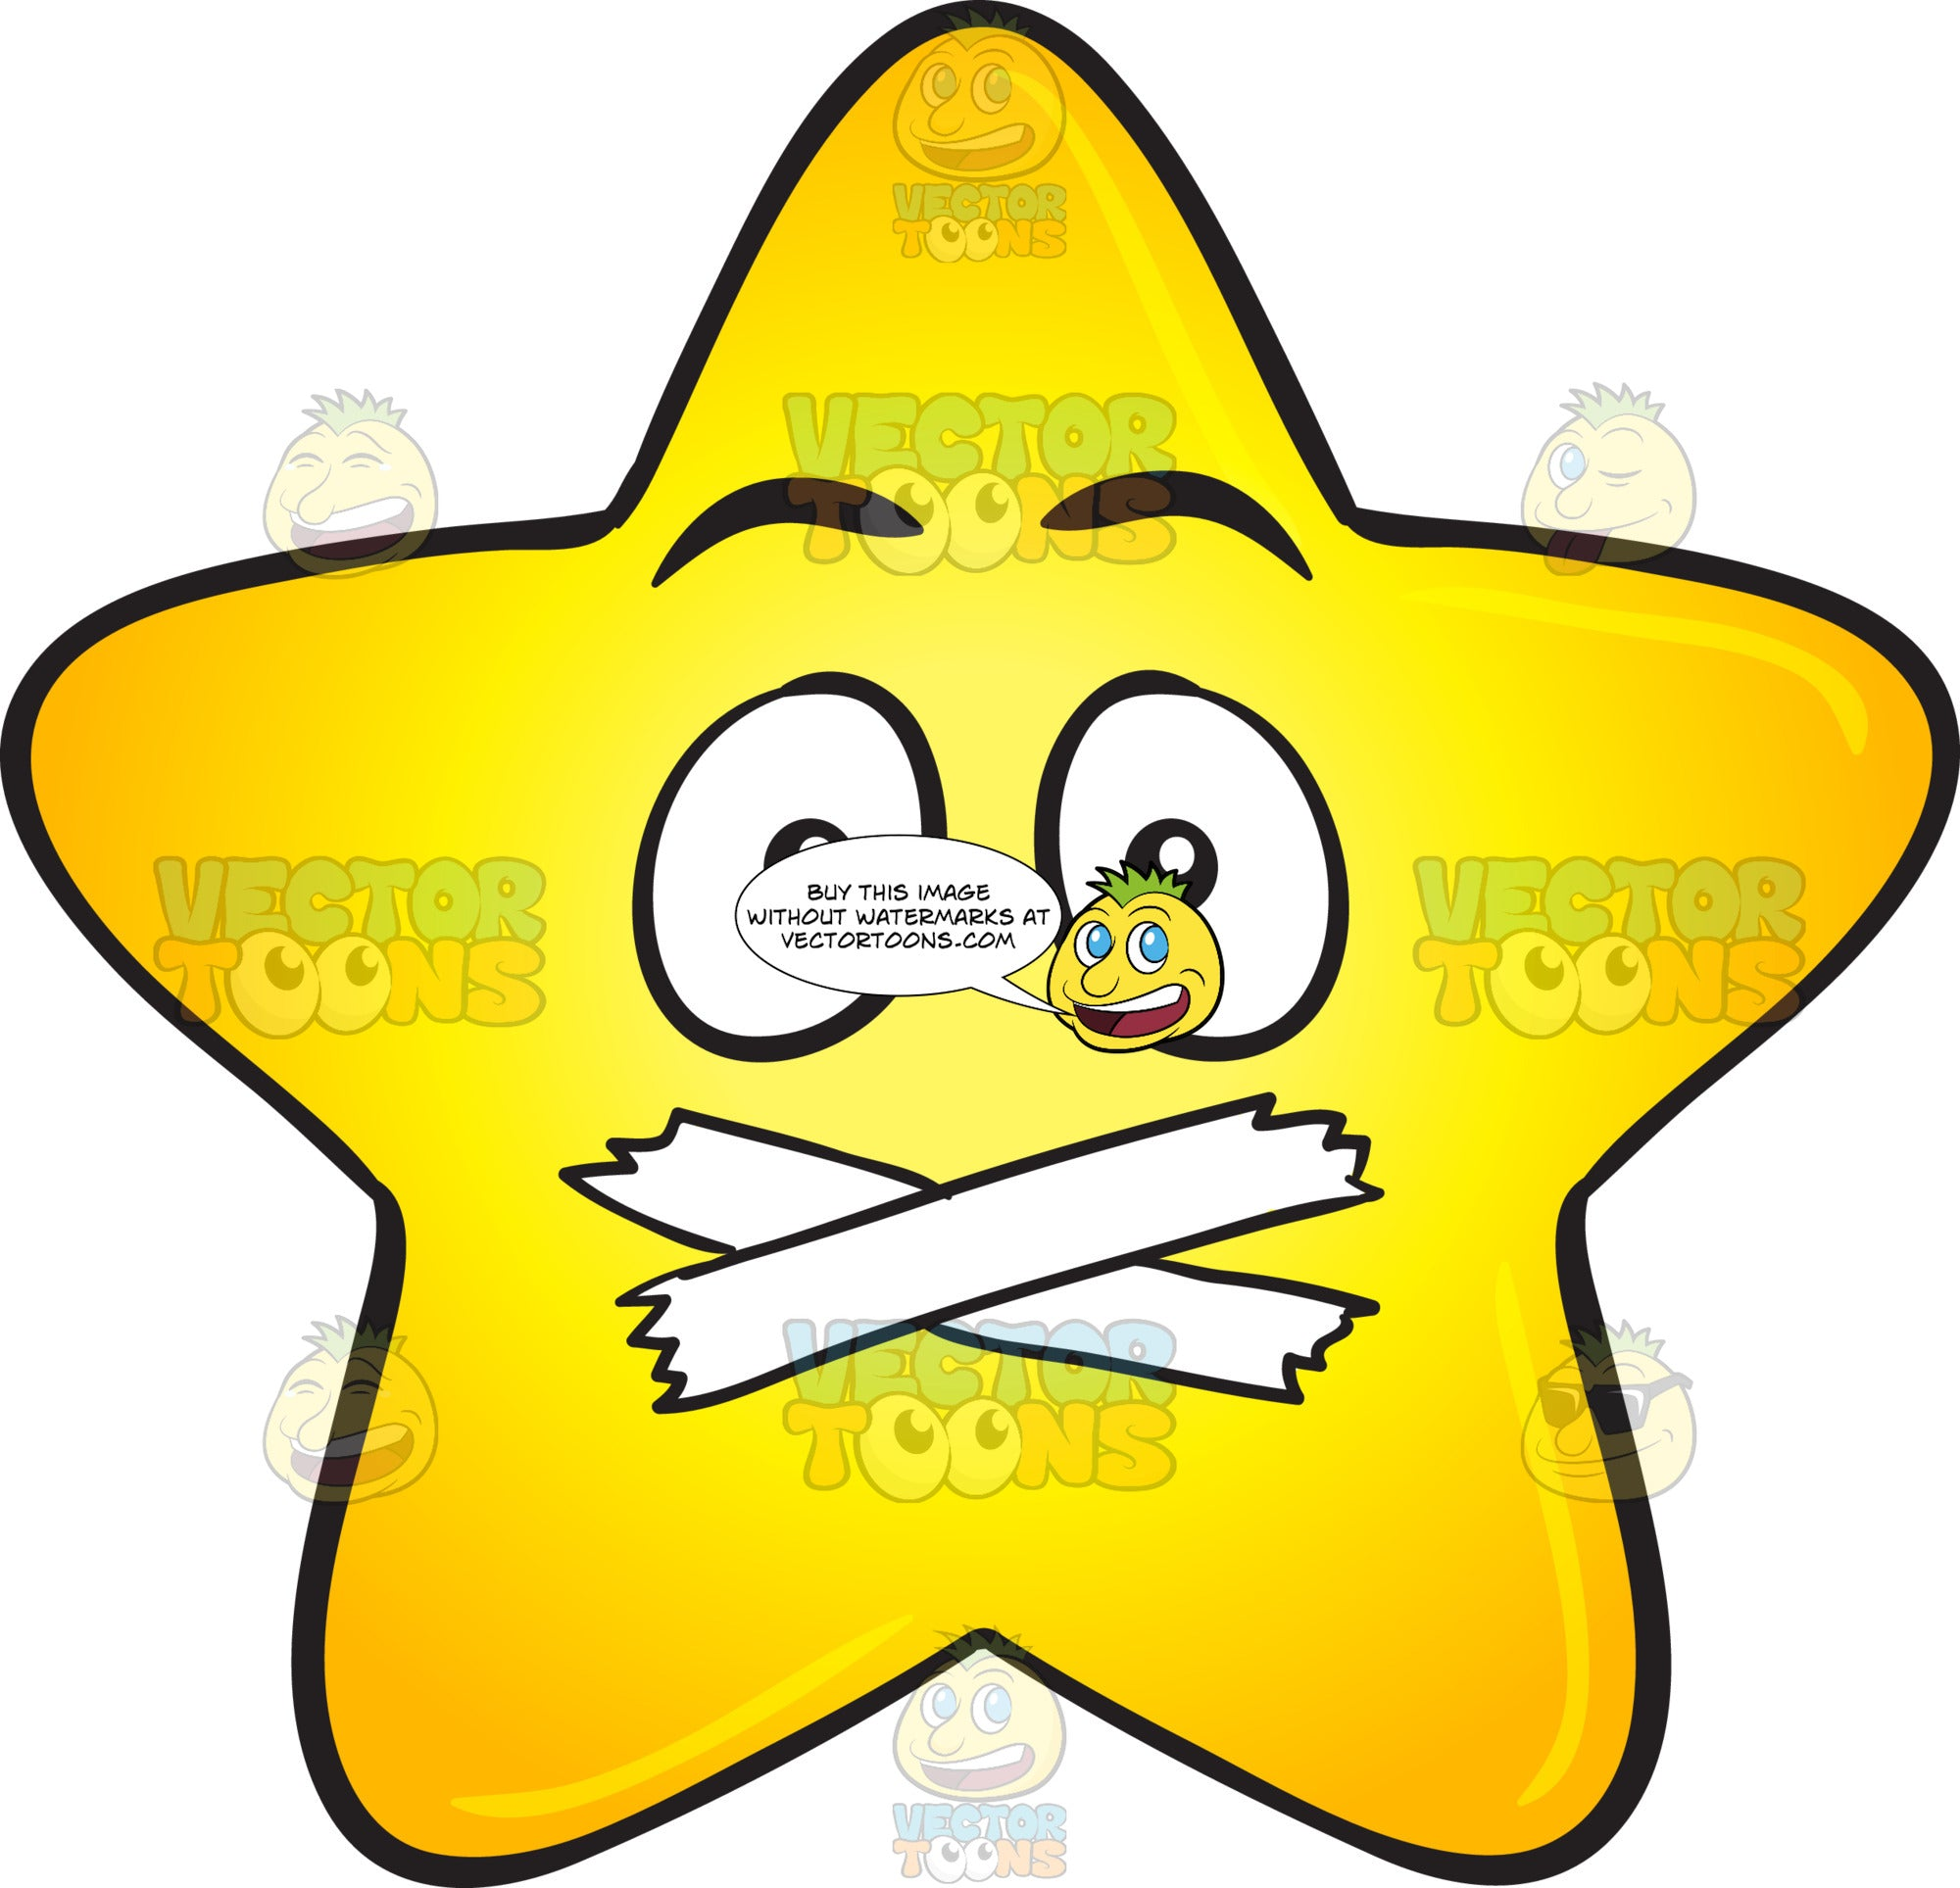 Single Gold Star Cartoon With Taped Mouth Emoji